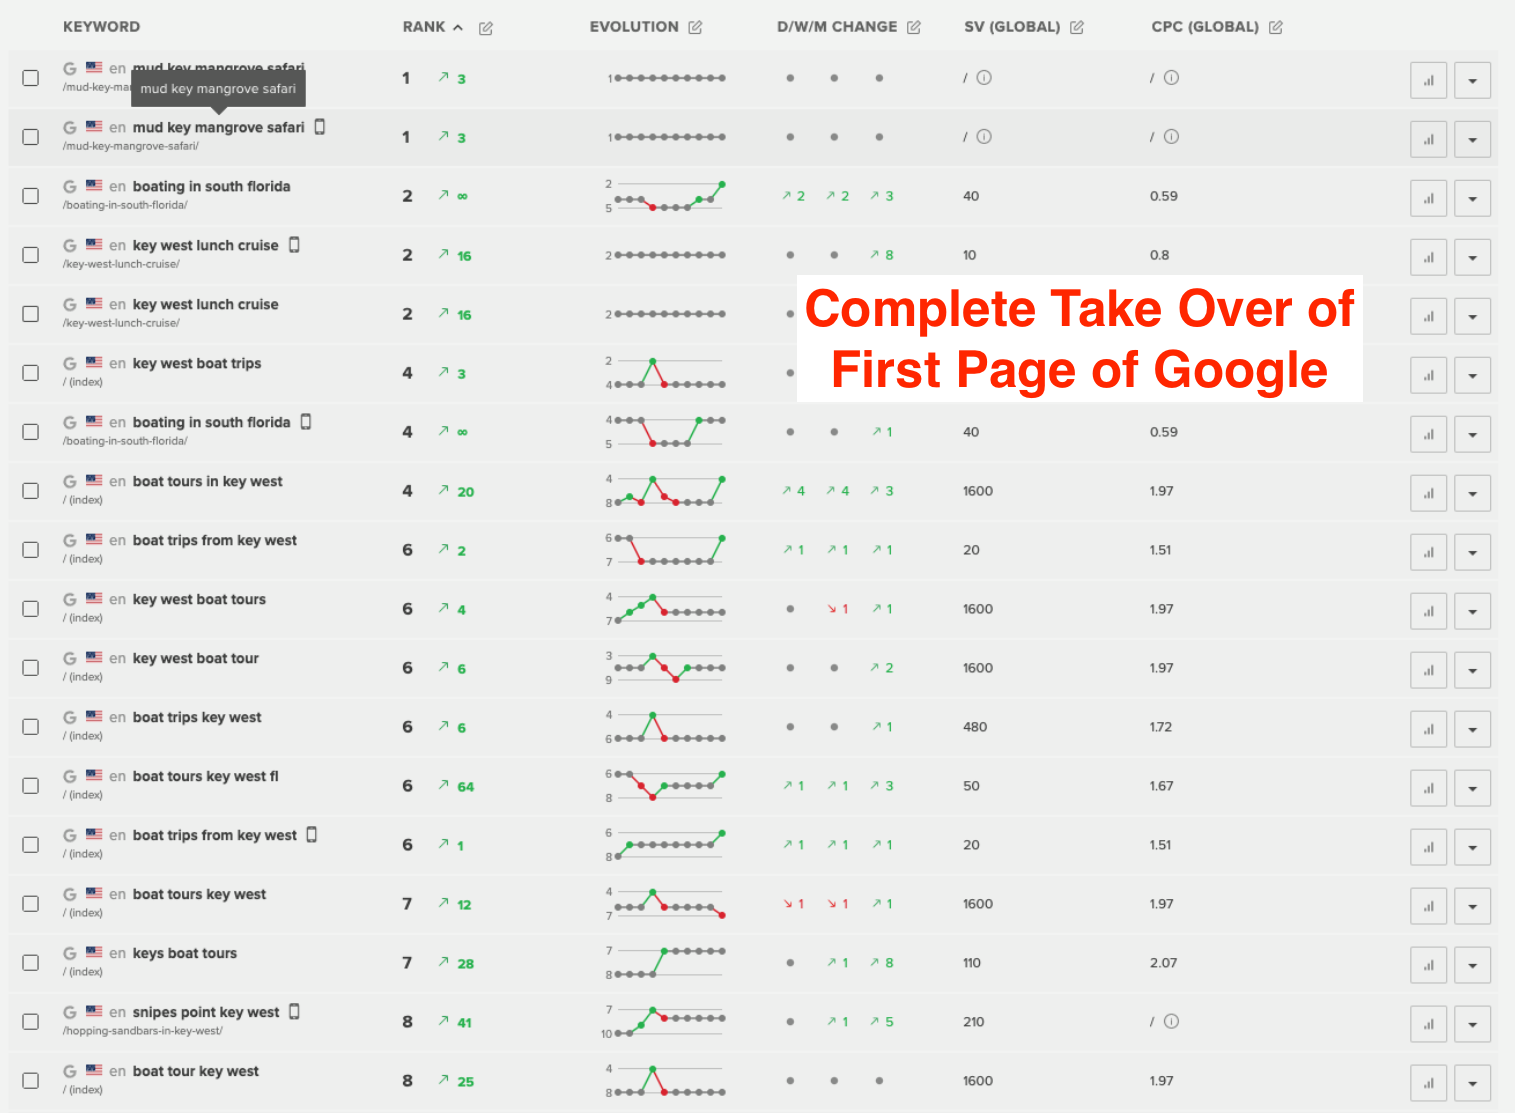 First page rankings